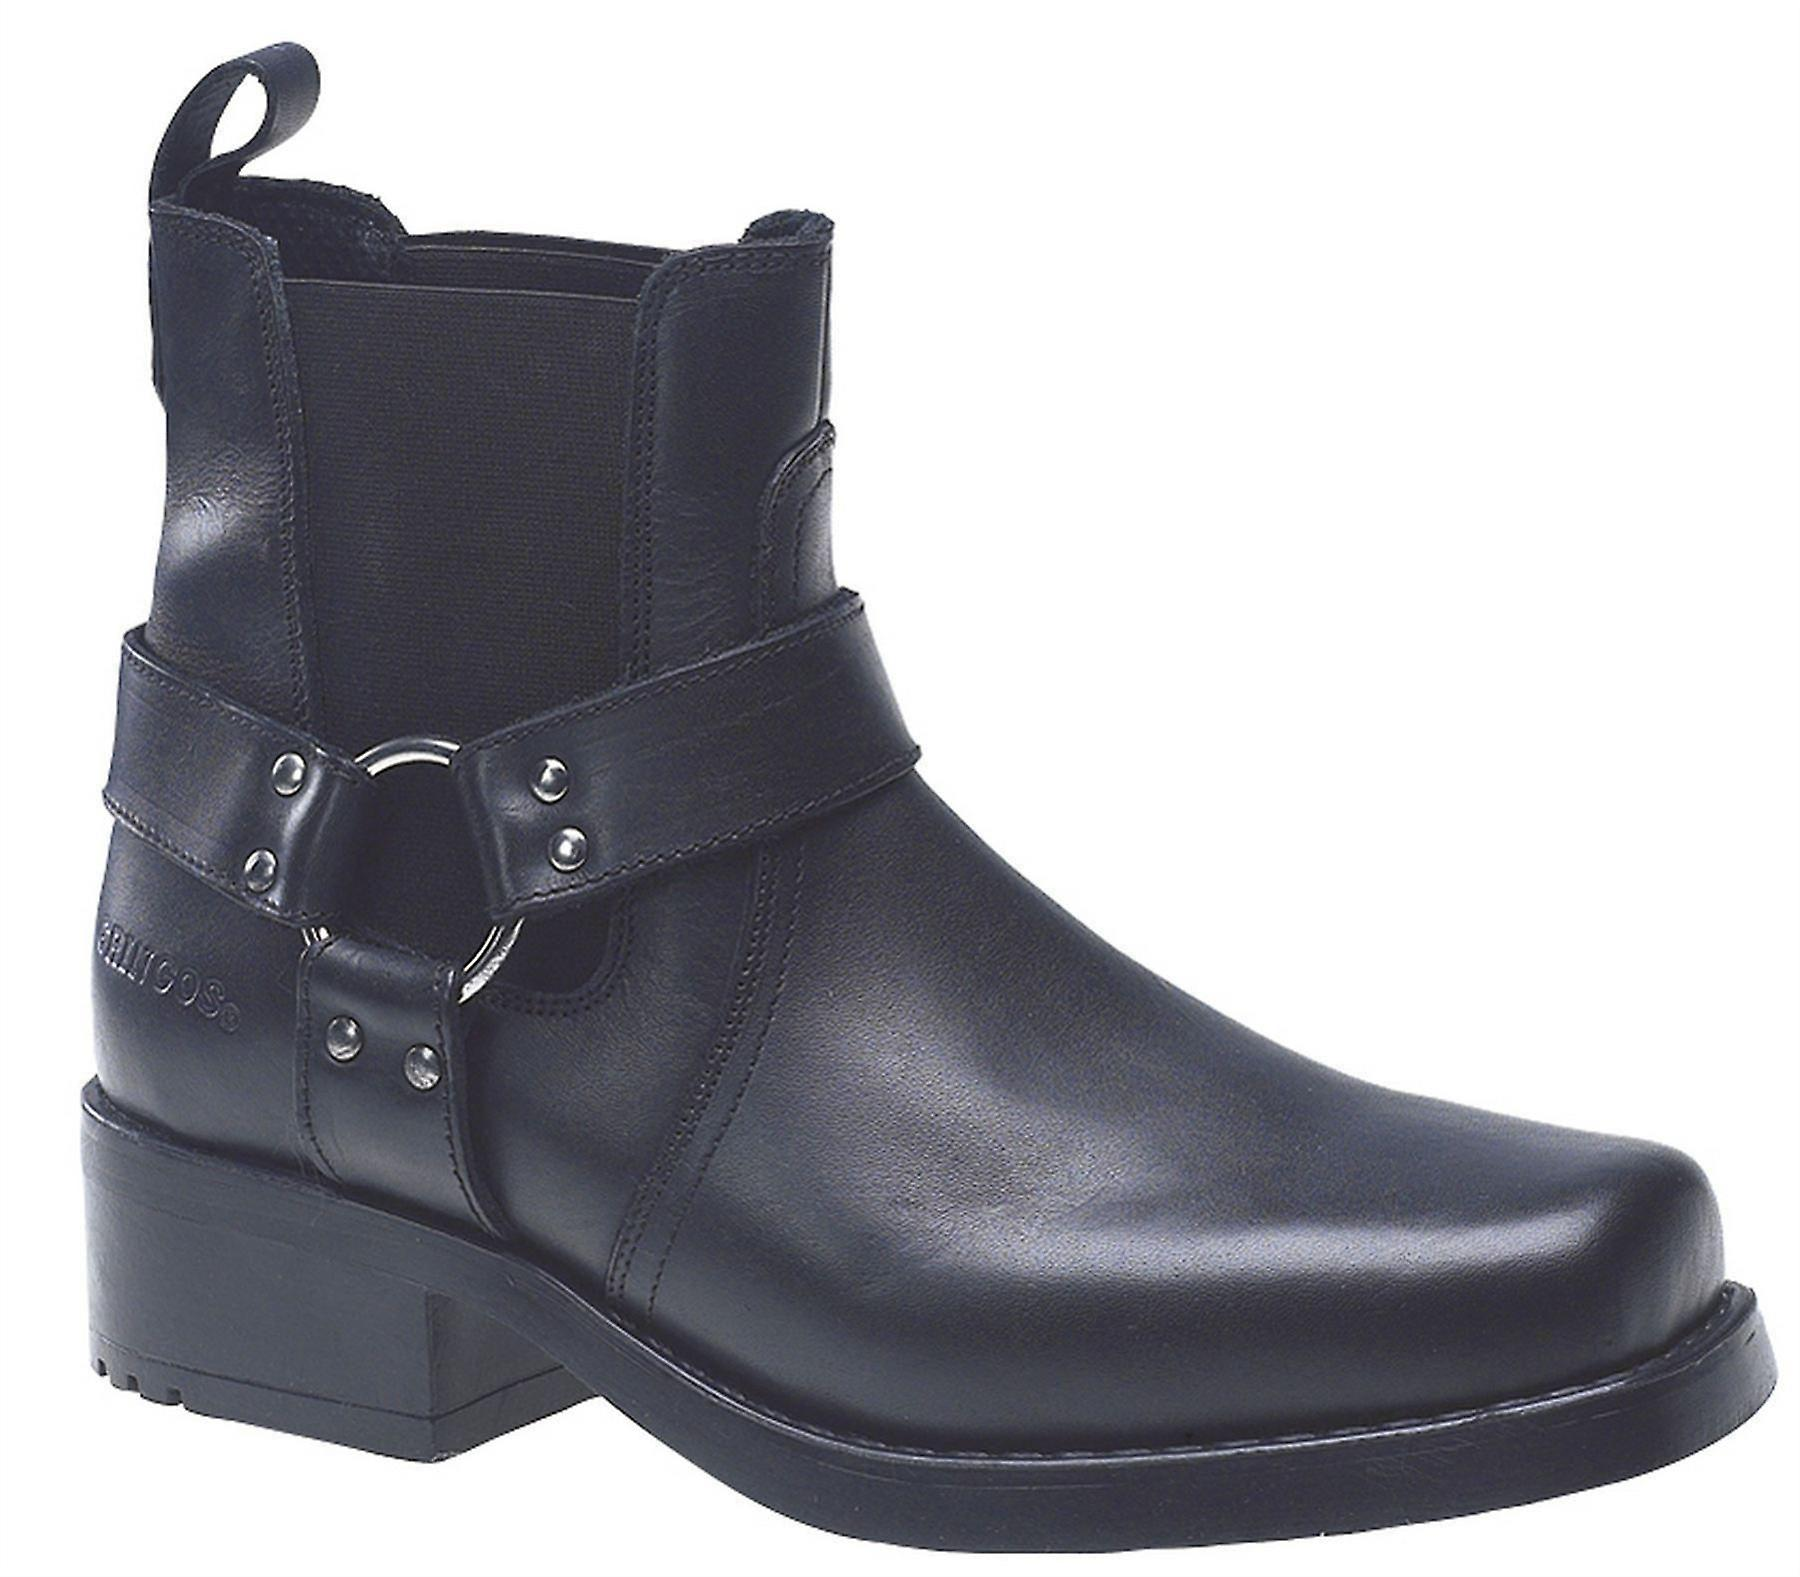 Mens Leather Slip On Gusset Harness Square Toe Ankle Biker Boots Shoes